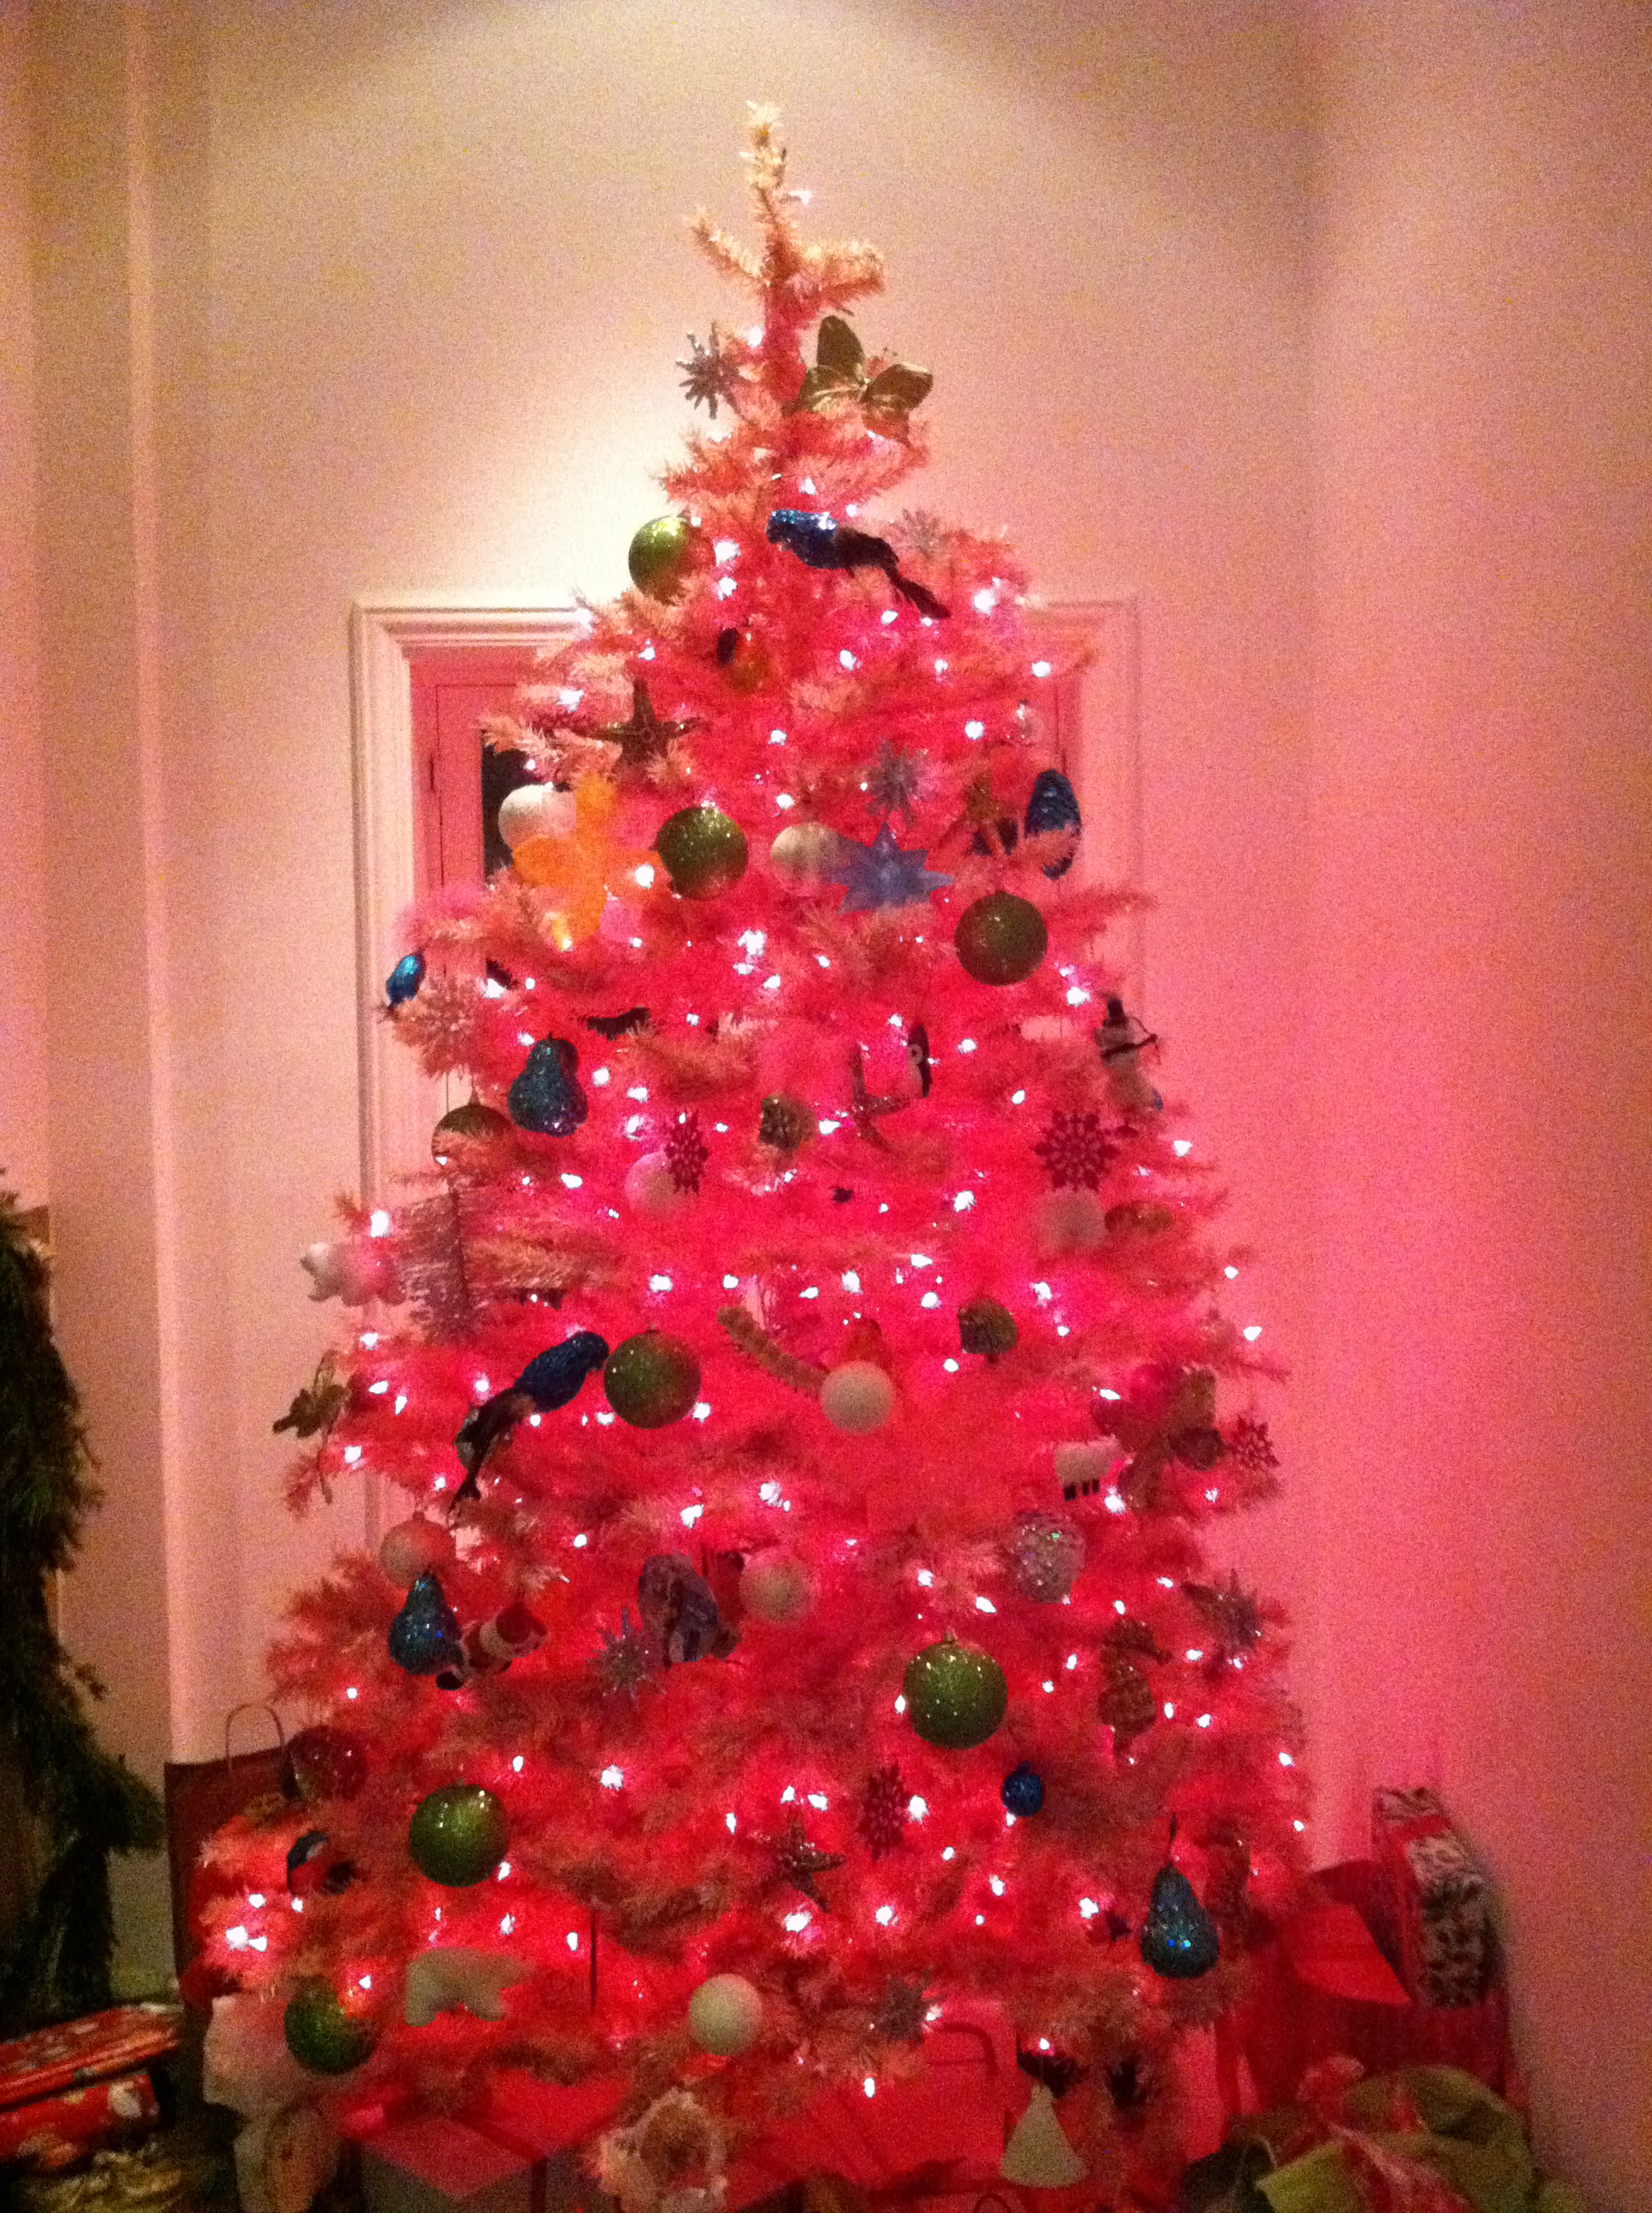 Pink Christmas Tree I also love that your tree